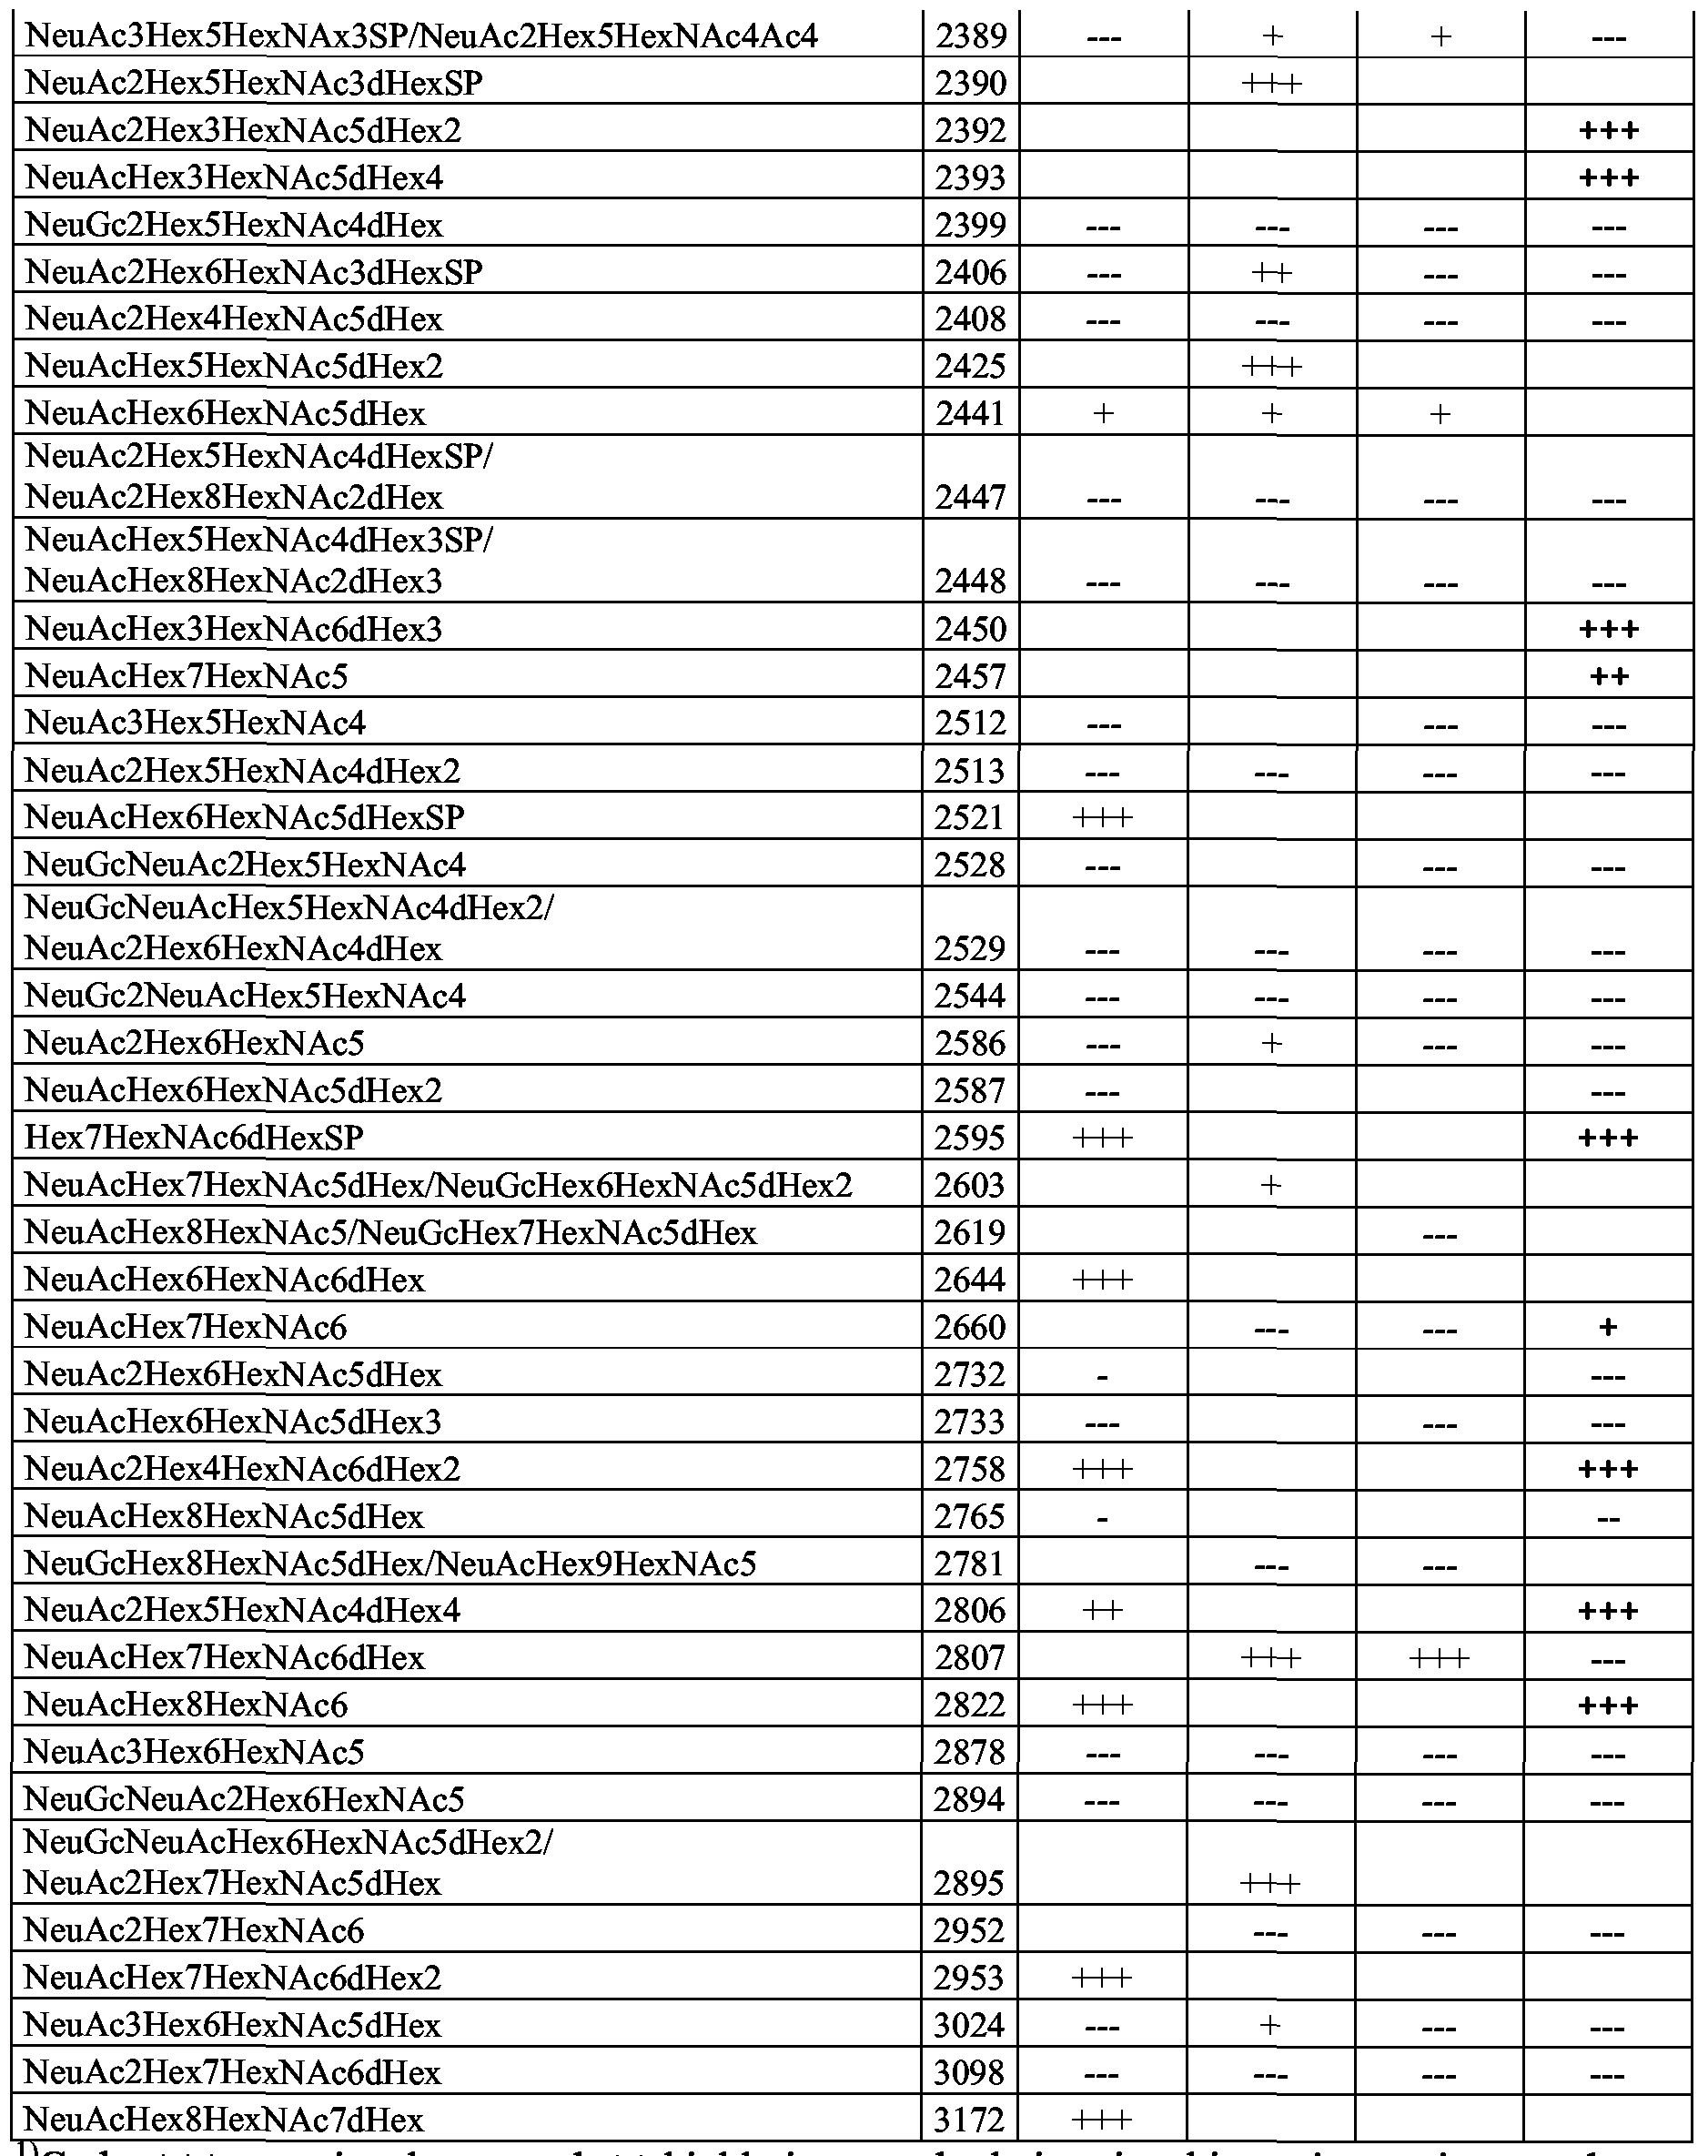 6fc0af83c13 WO2007054620A1 - Novel carbohydrate profile compositions from human cells  and methods for analysis and modification thereof - Google Patents